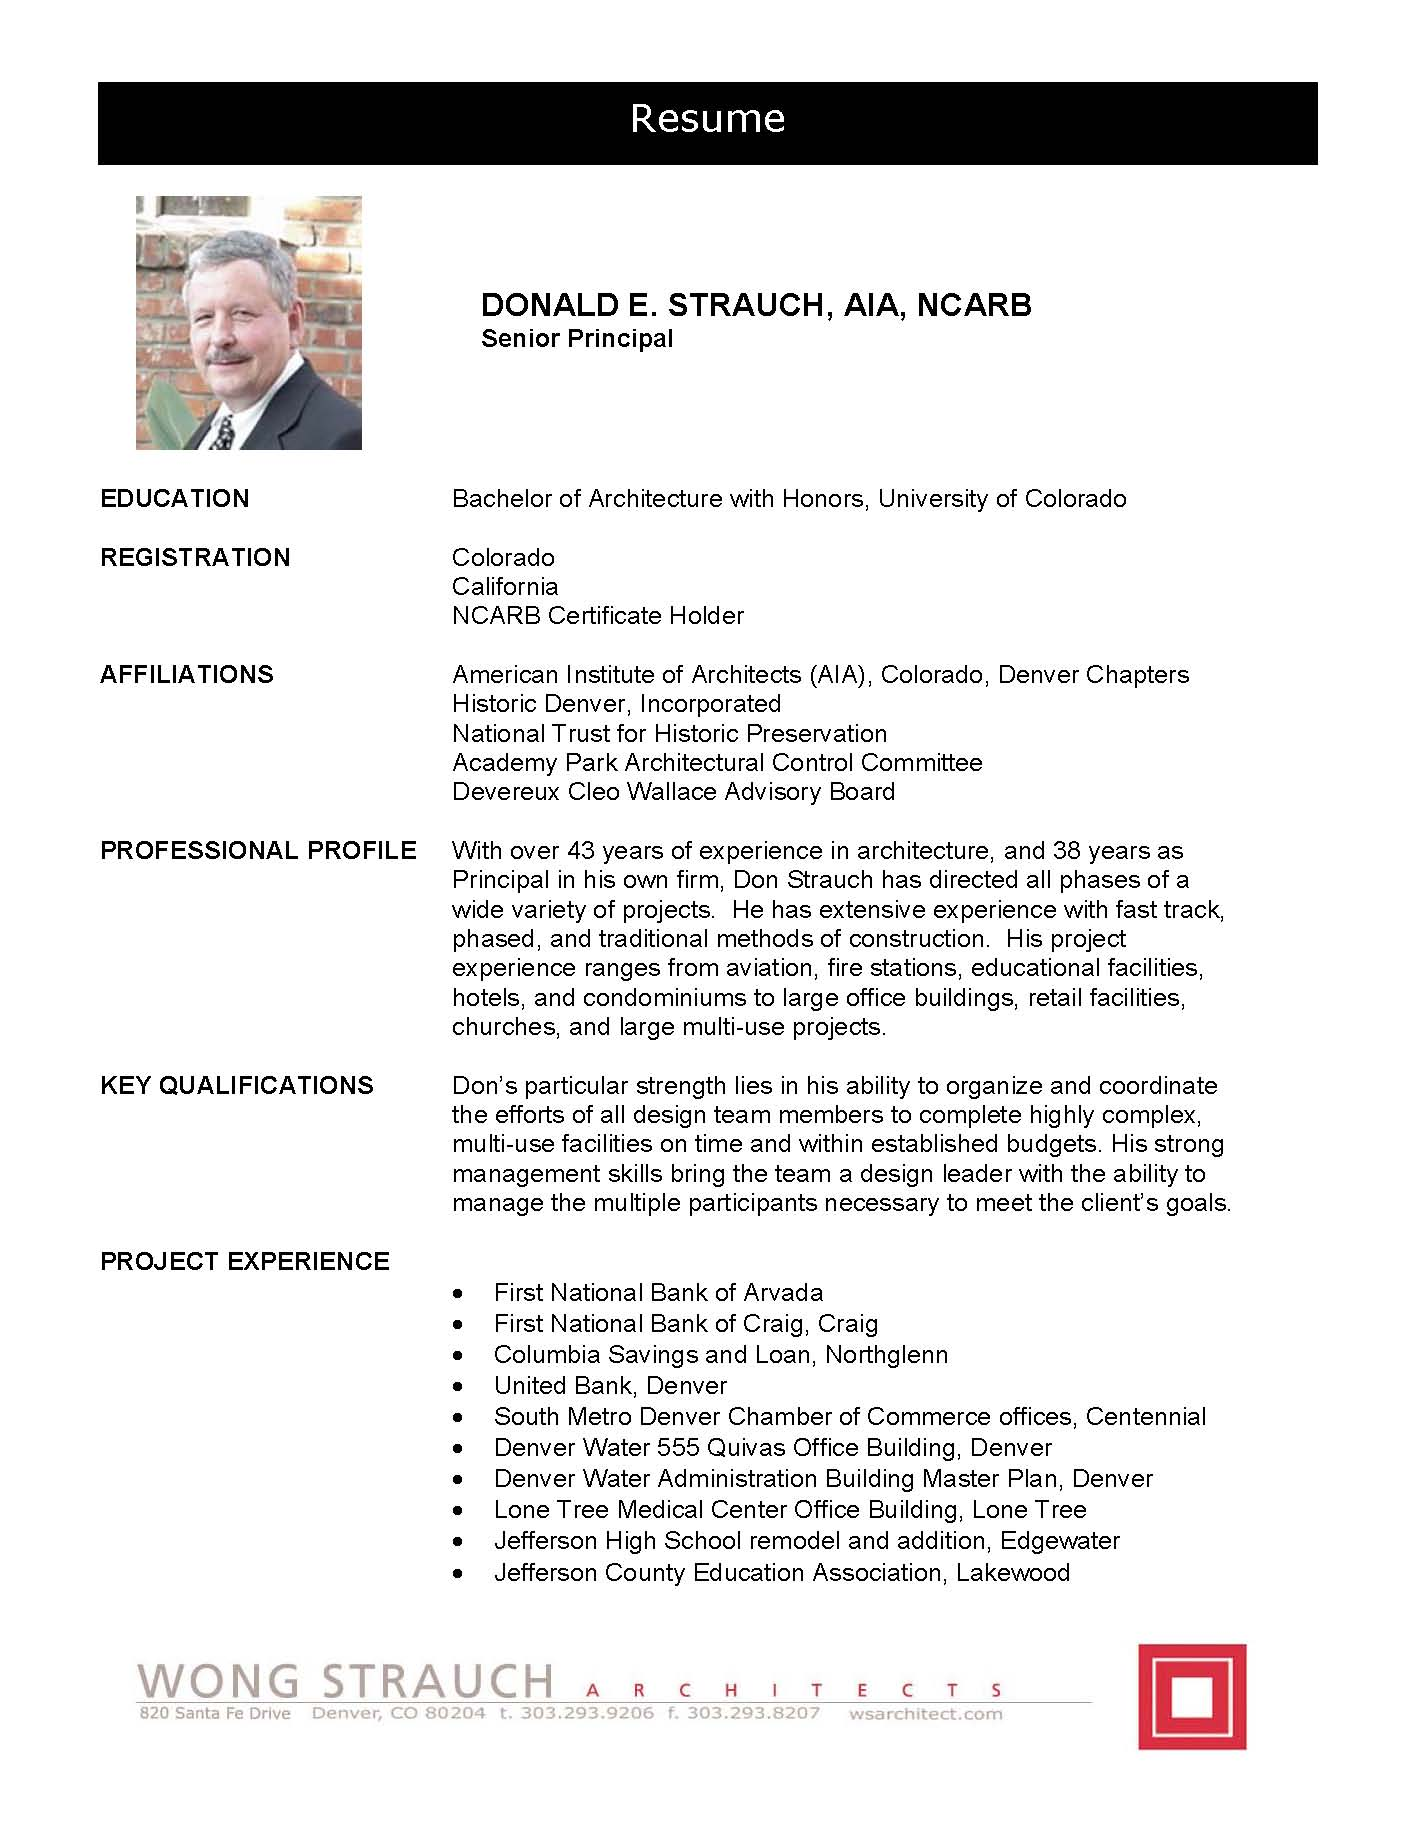 Don Strauch Resume_Page_1